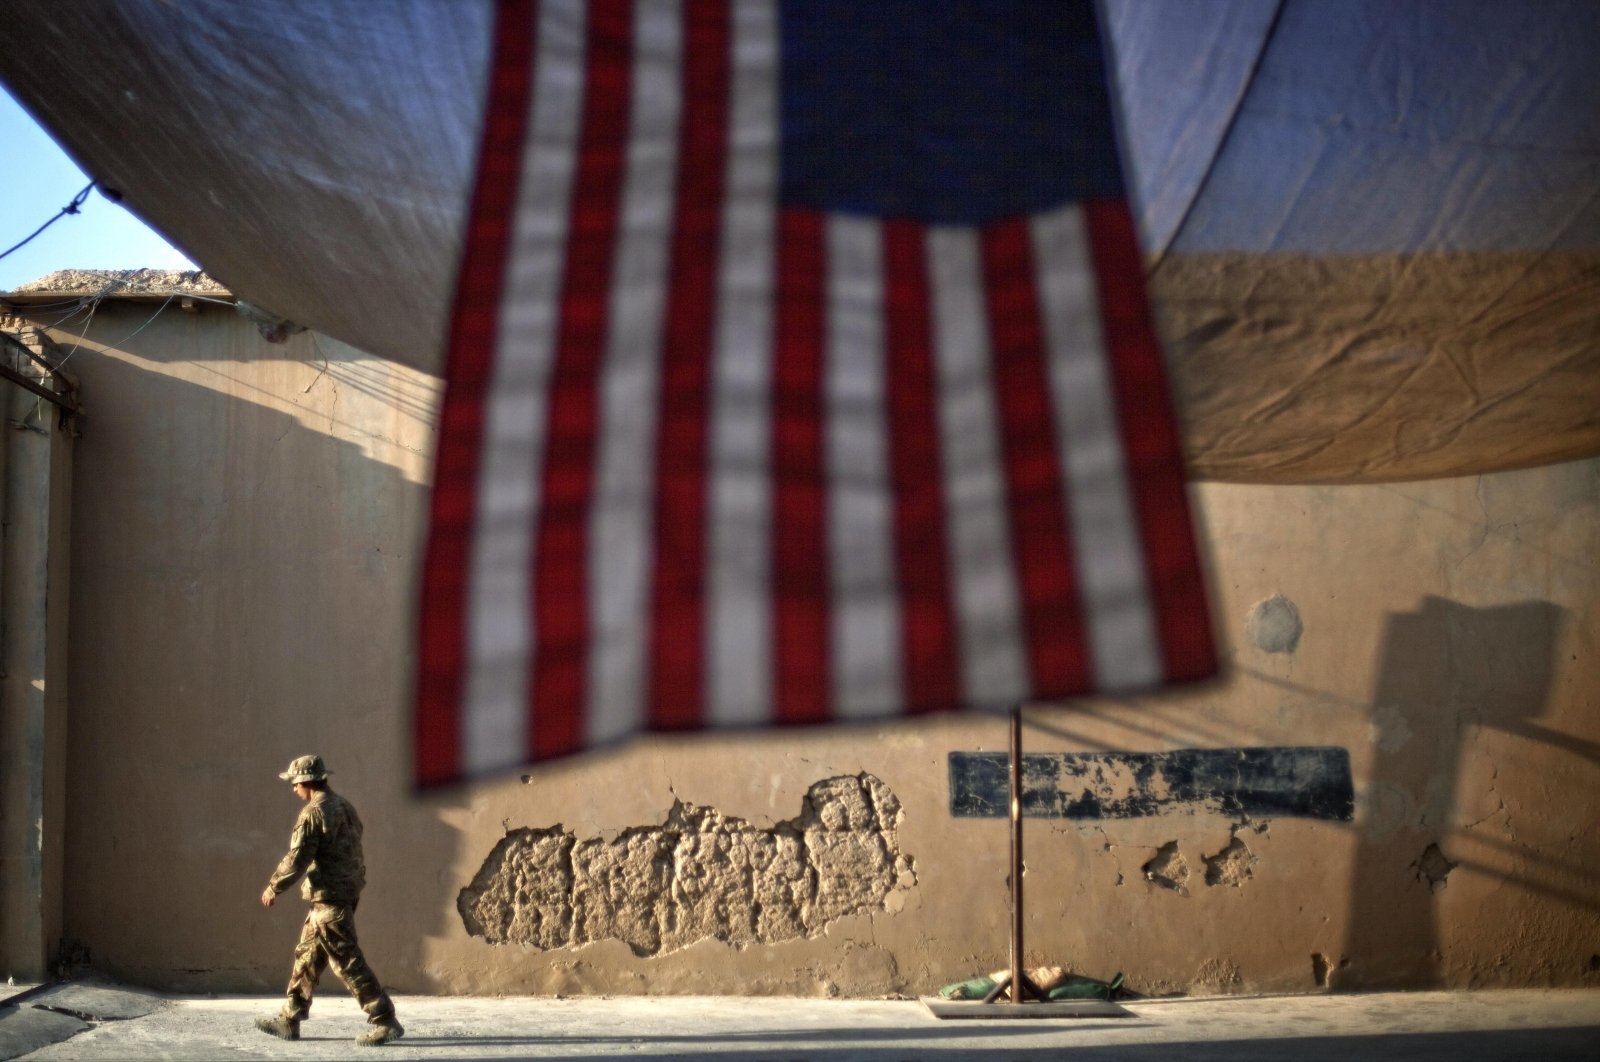 A U.S. Army soldier walks past an American flag hanging in preparation for a ceremony commemorating the tenth anniversary of the 9/11 attacks, in Kunar province, Afghanistan, Sept. 11, 2011. (AP Photo)